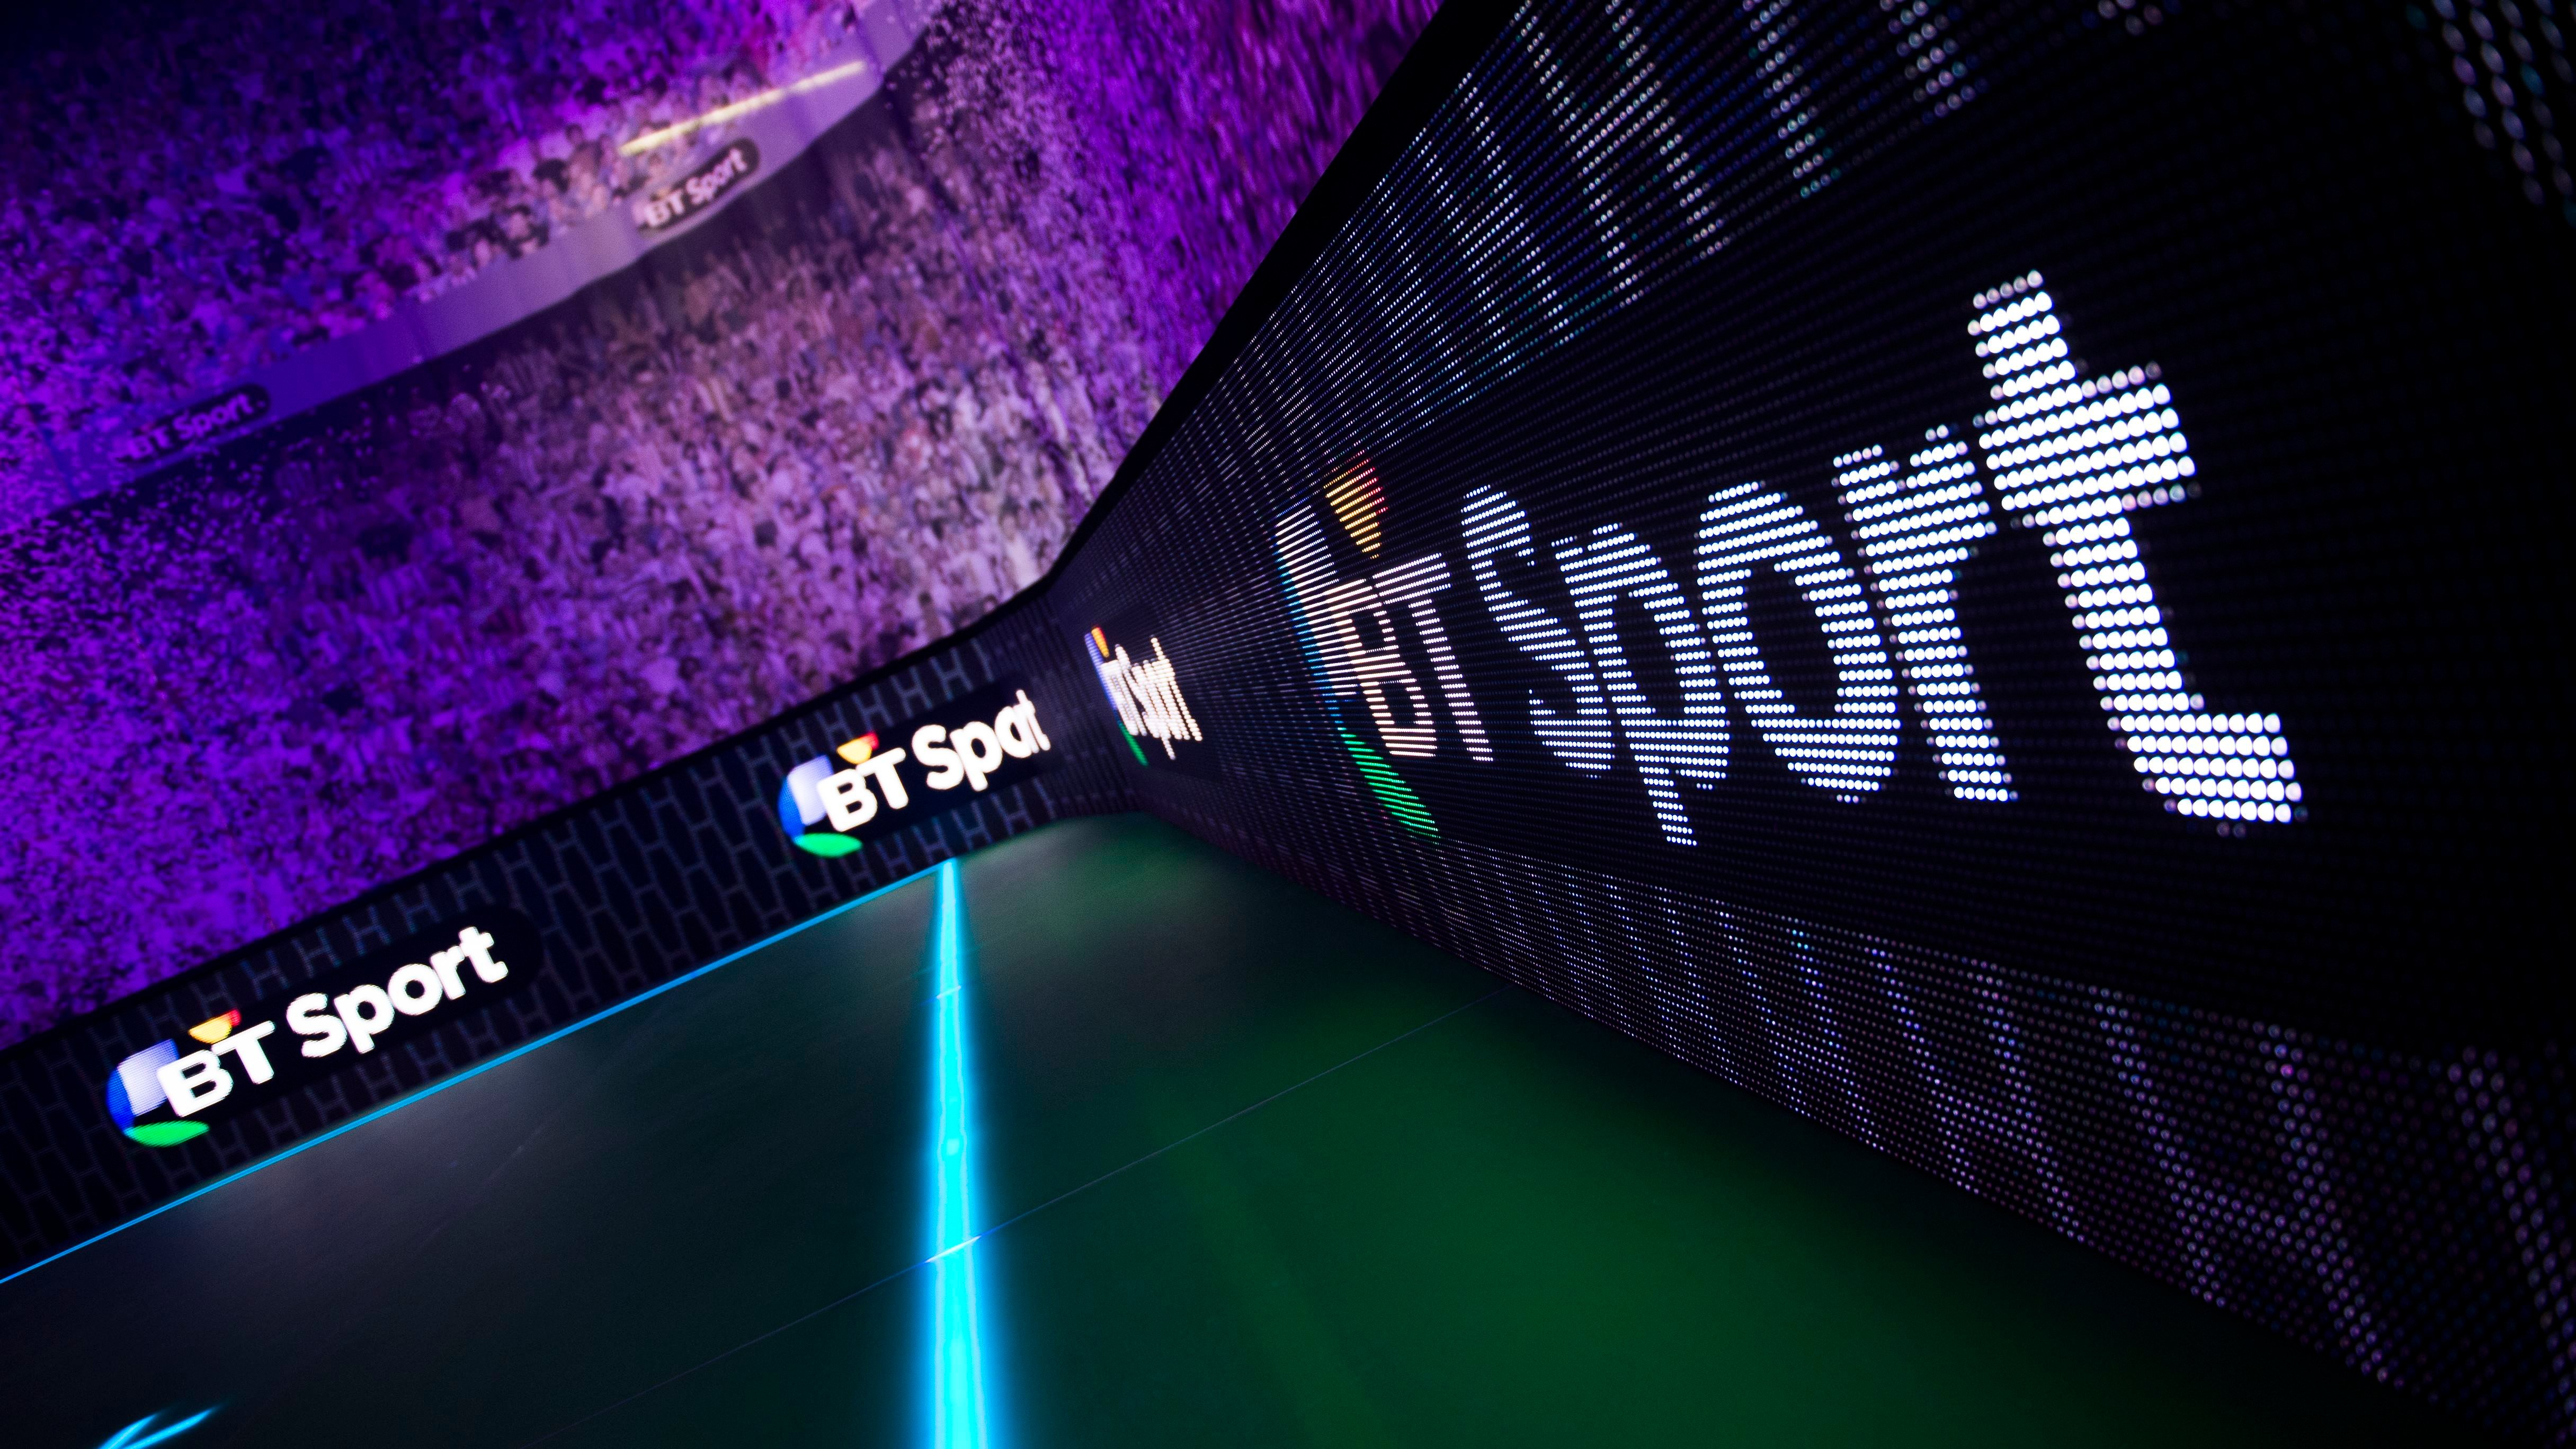 BT Sport struggles to stream first game of the season | Expert Reviews